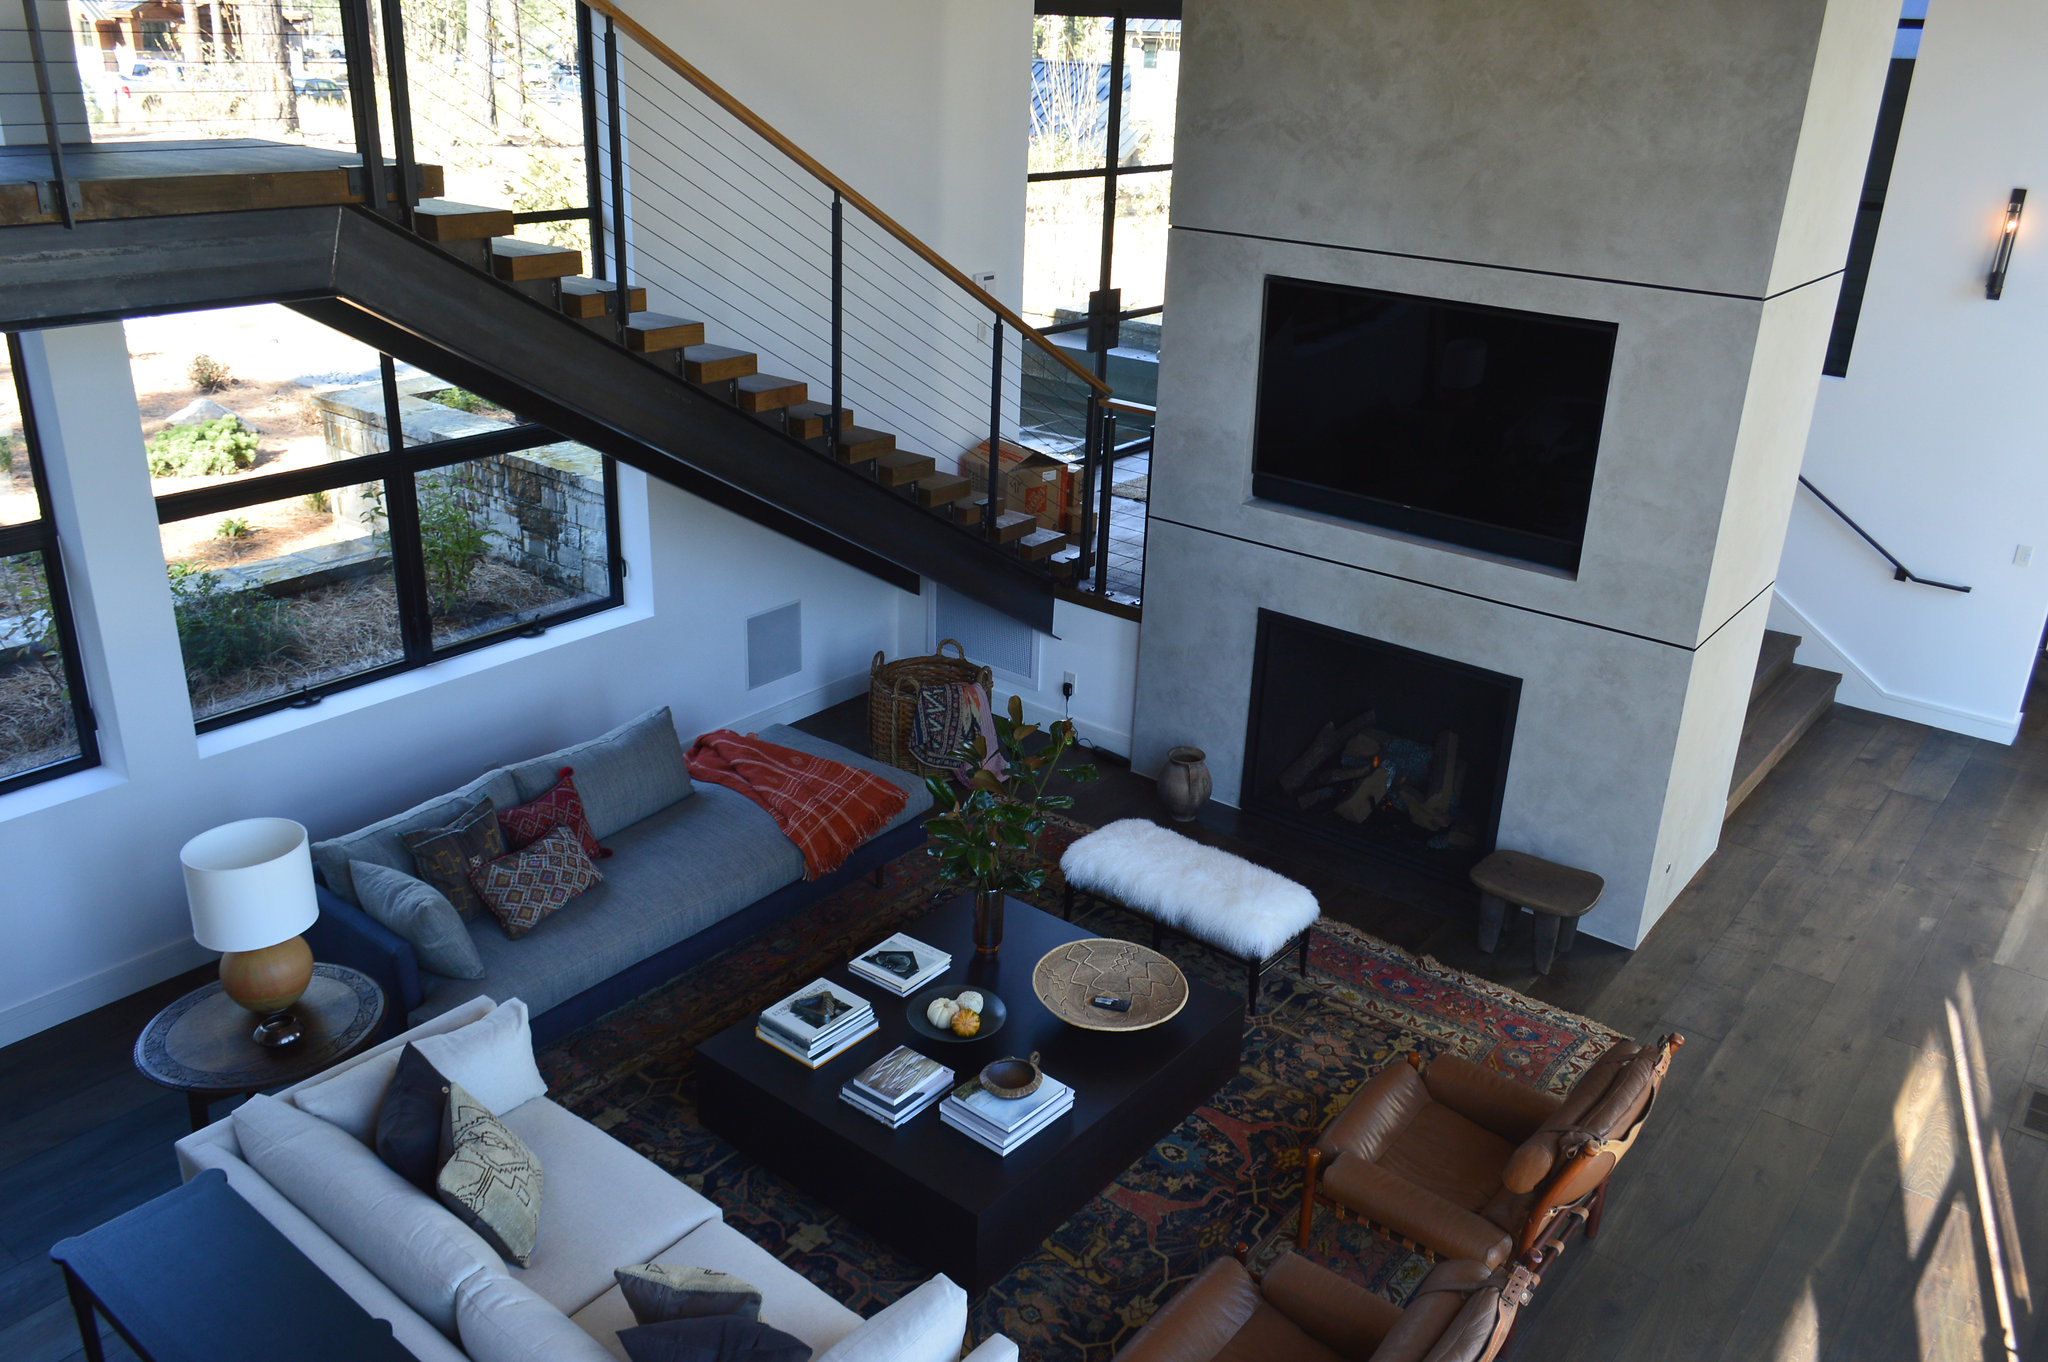 Microtop Living Room and Fireplace